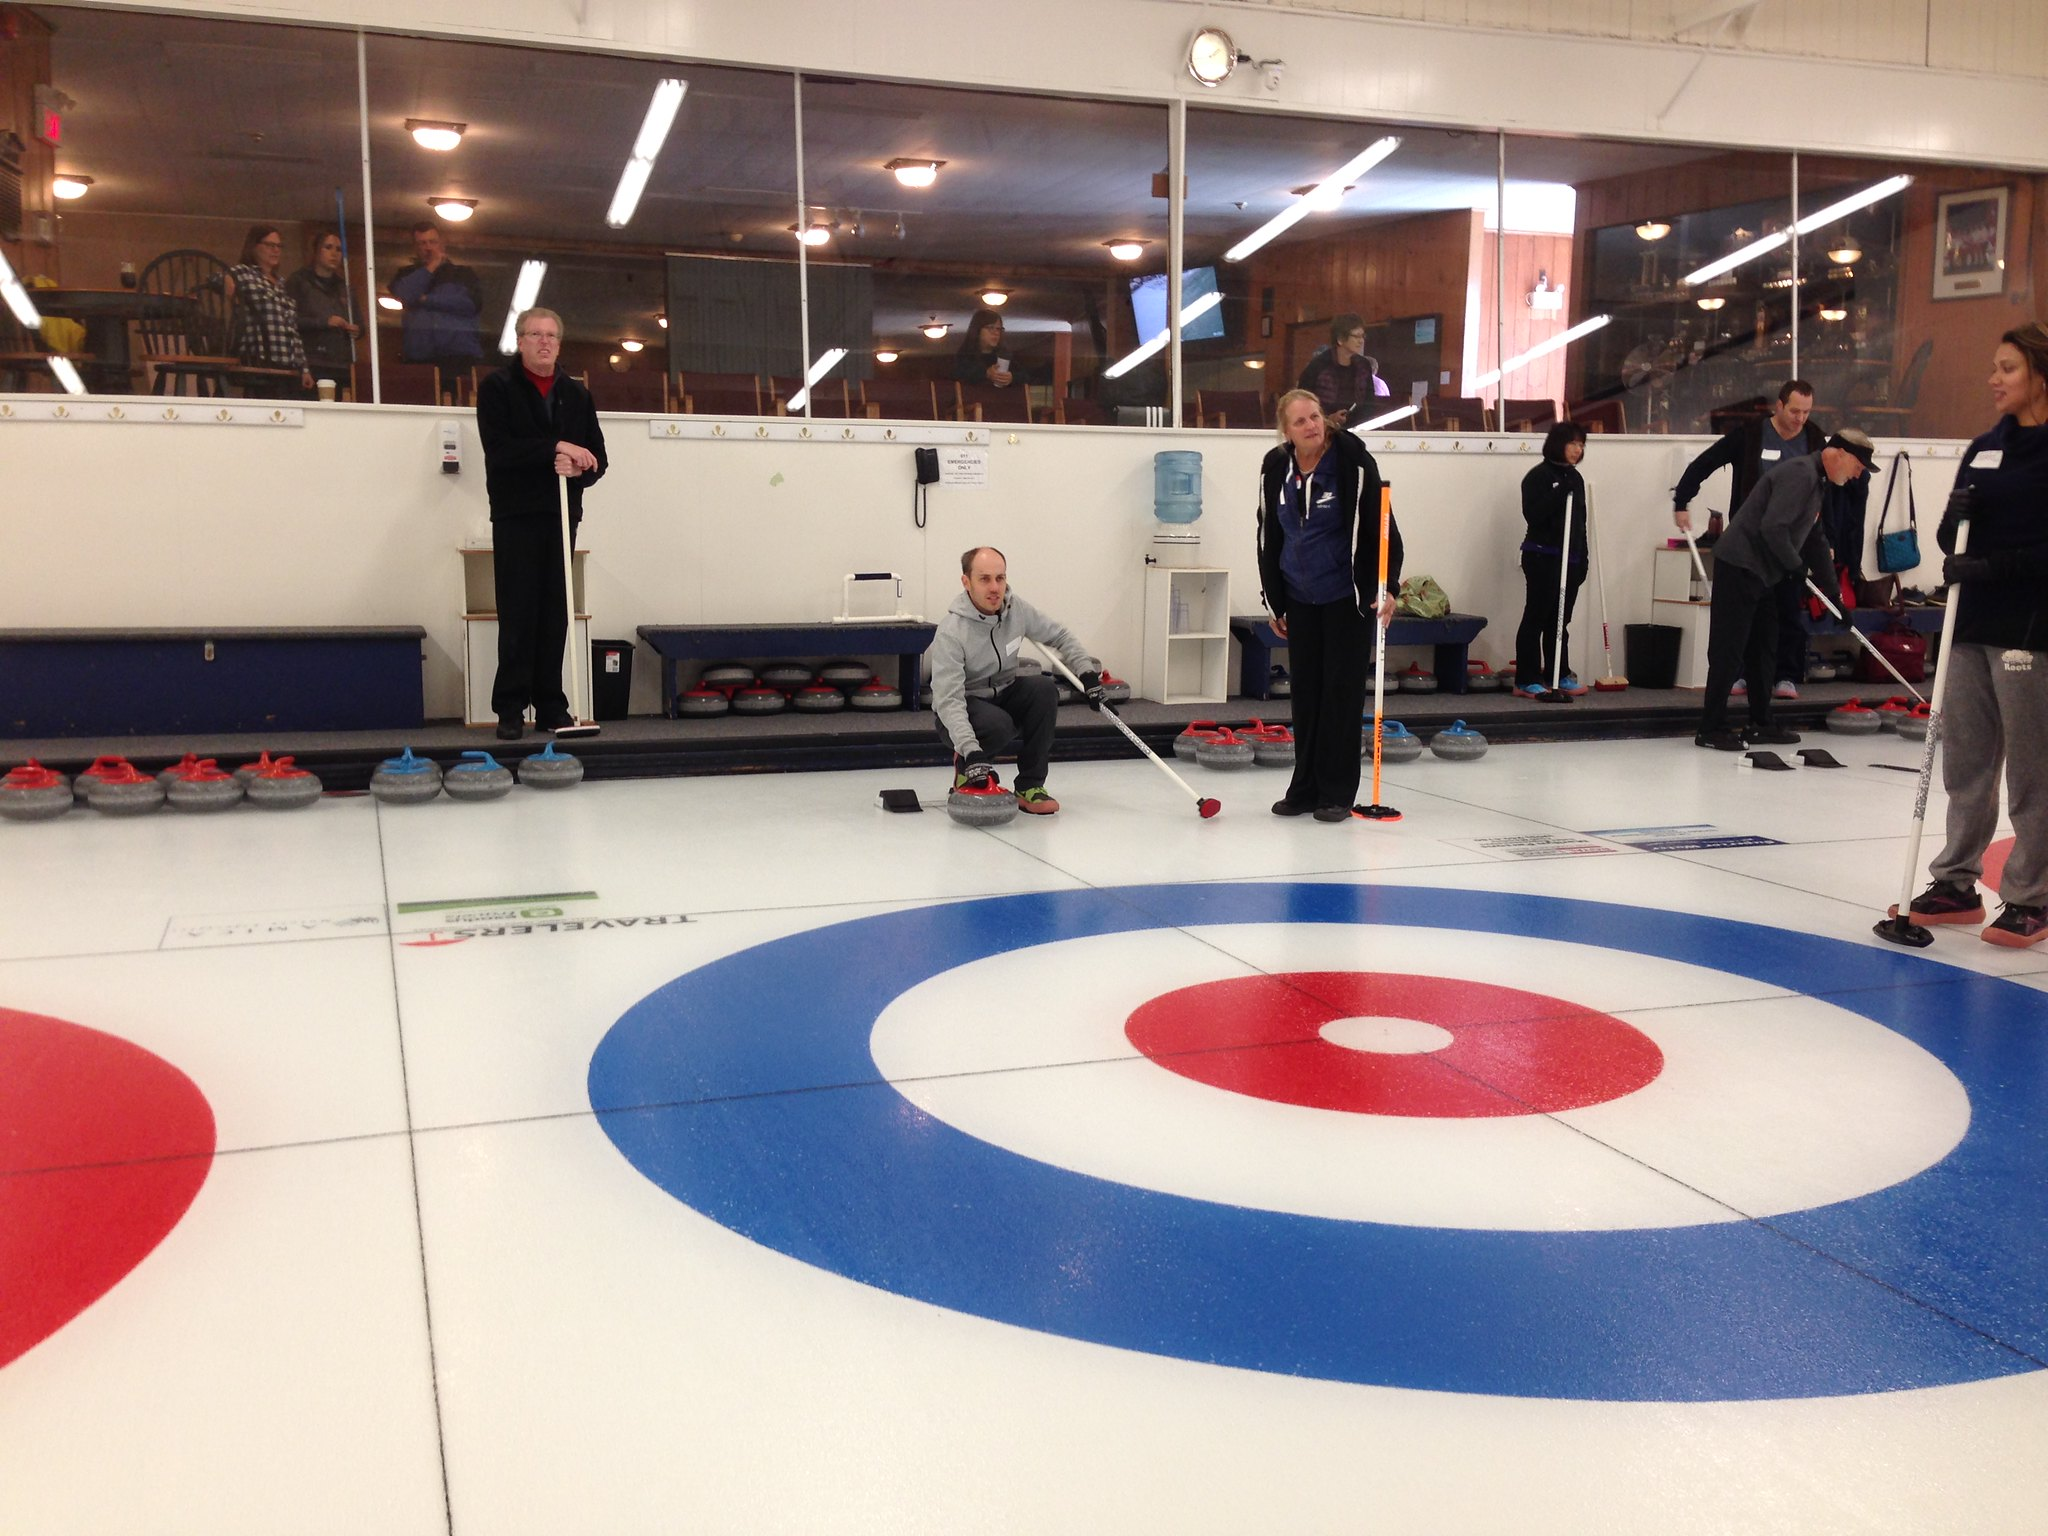 Getting ready to deliver the curling stone.